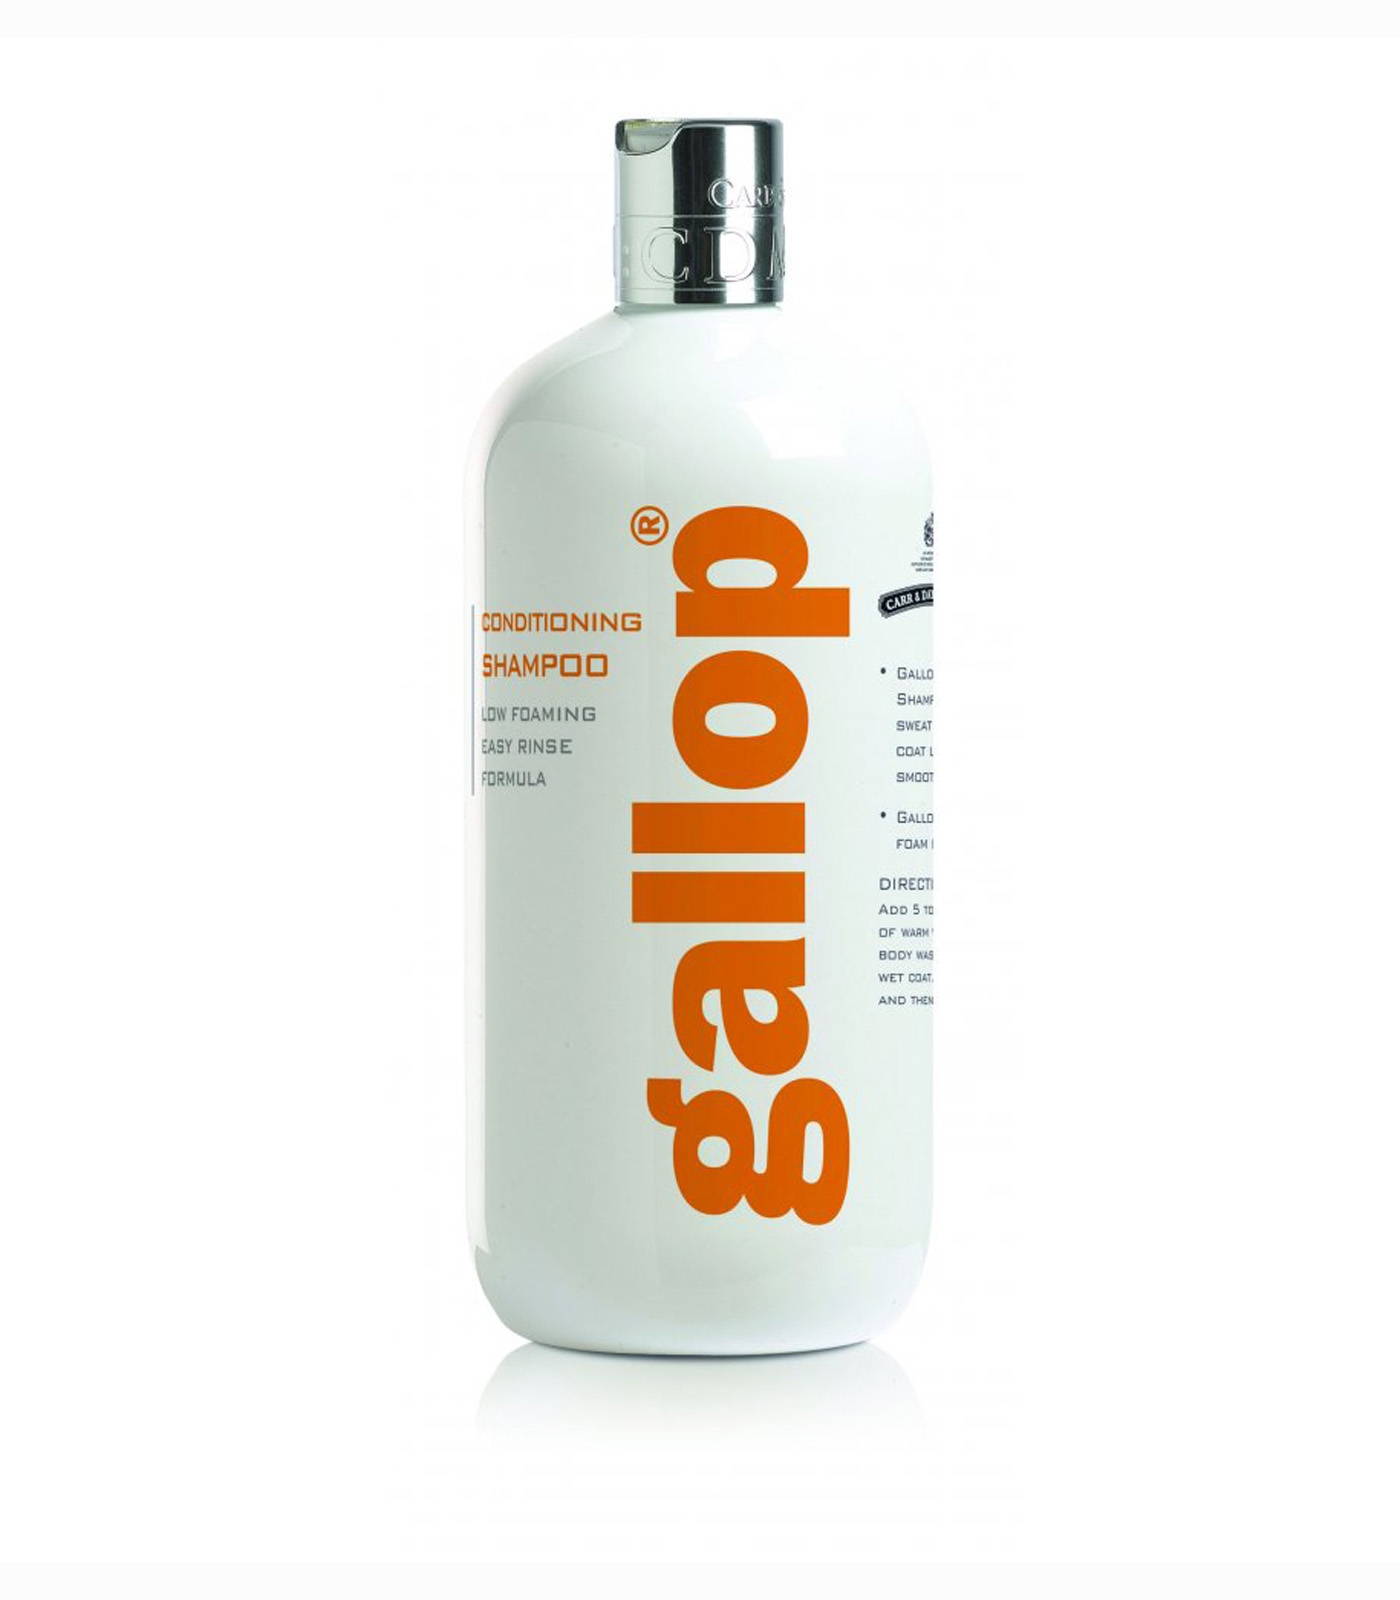 Шампунь кондиционер Gallop/Gallop Conditioning Shampoo 500 мл